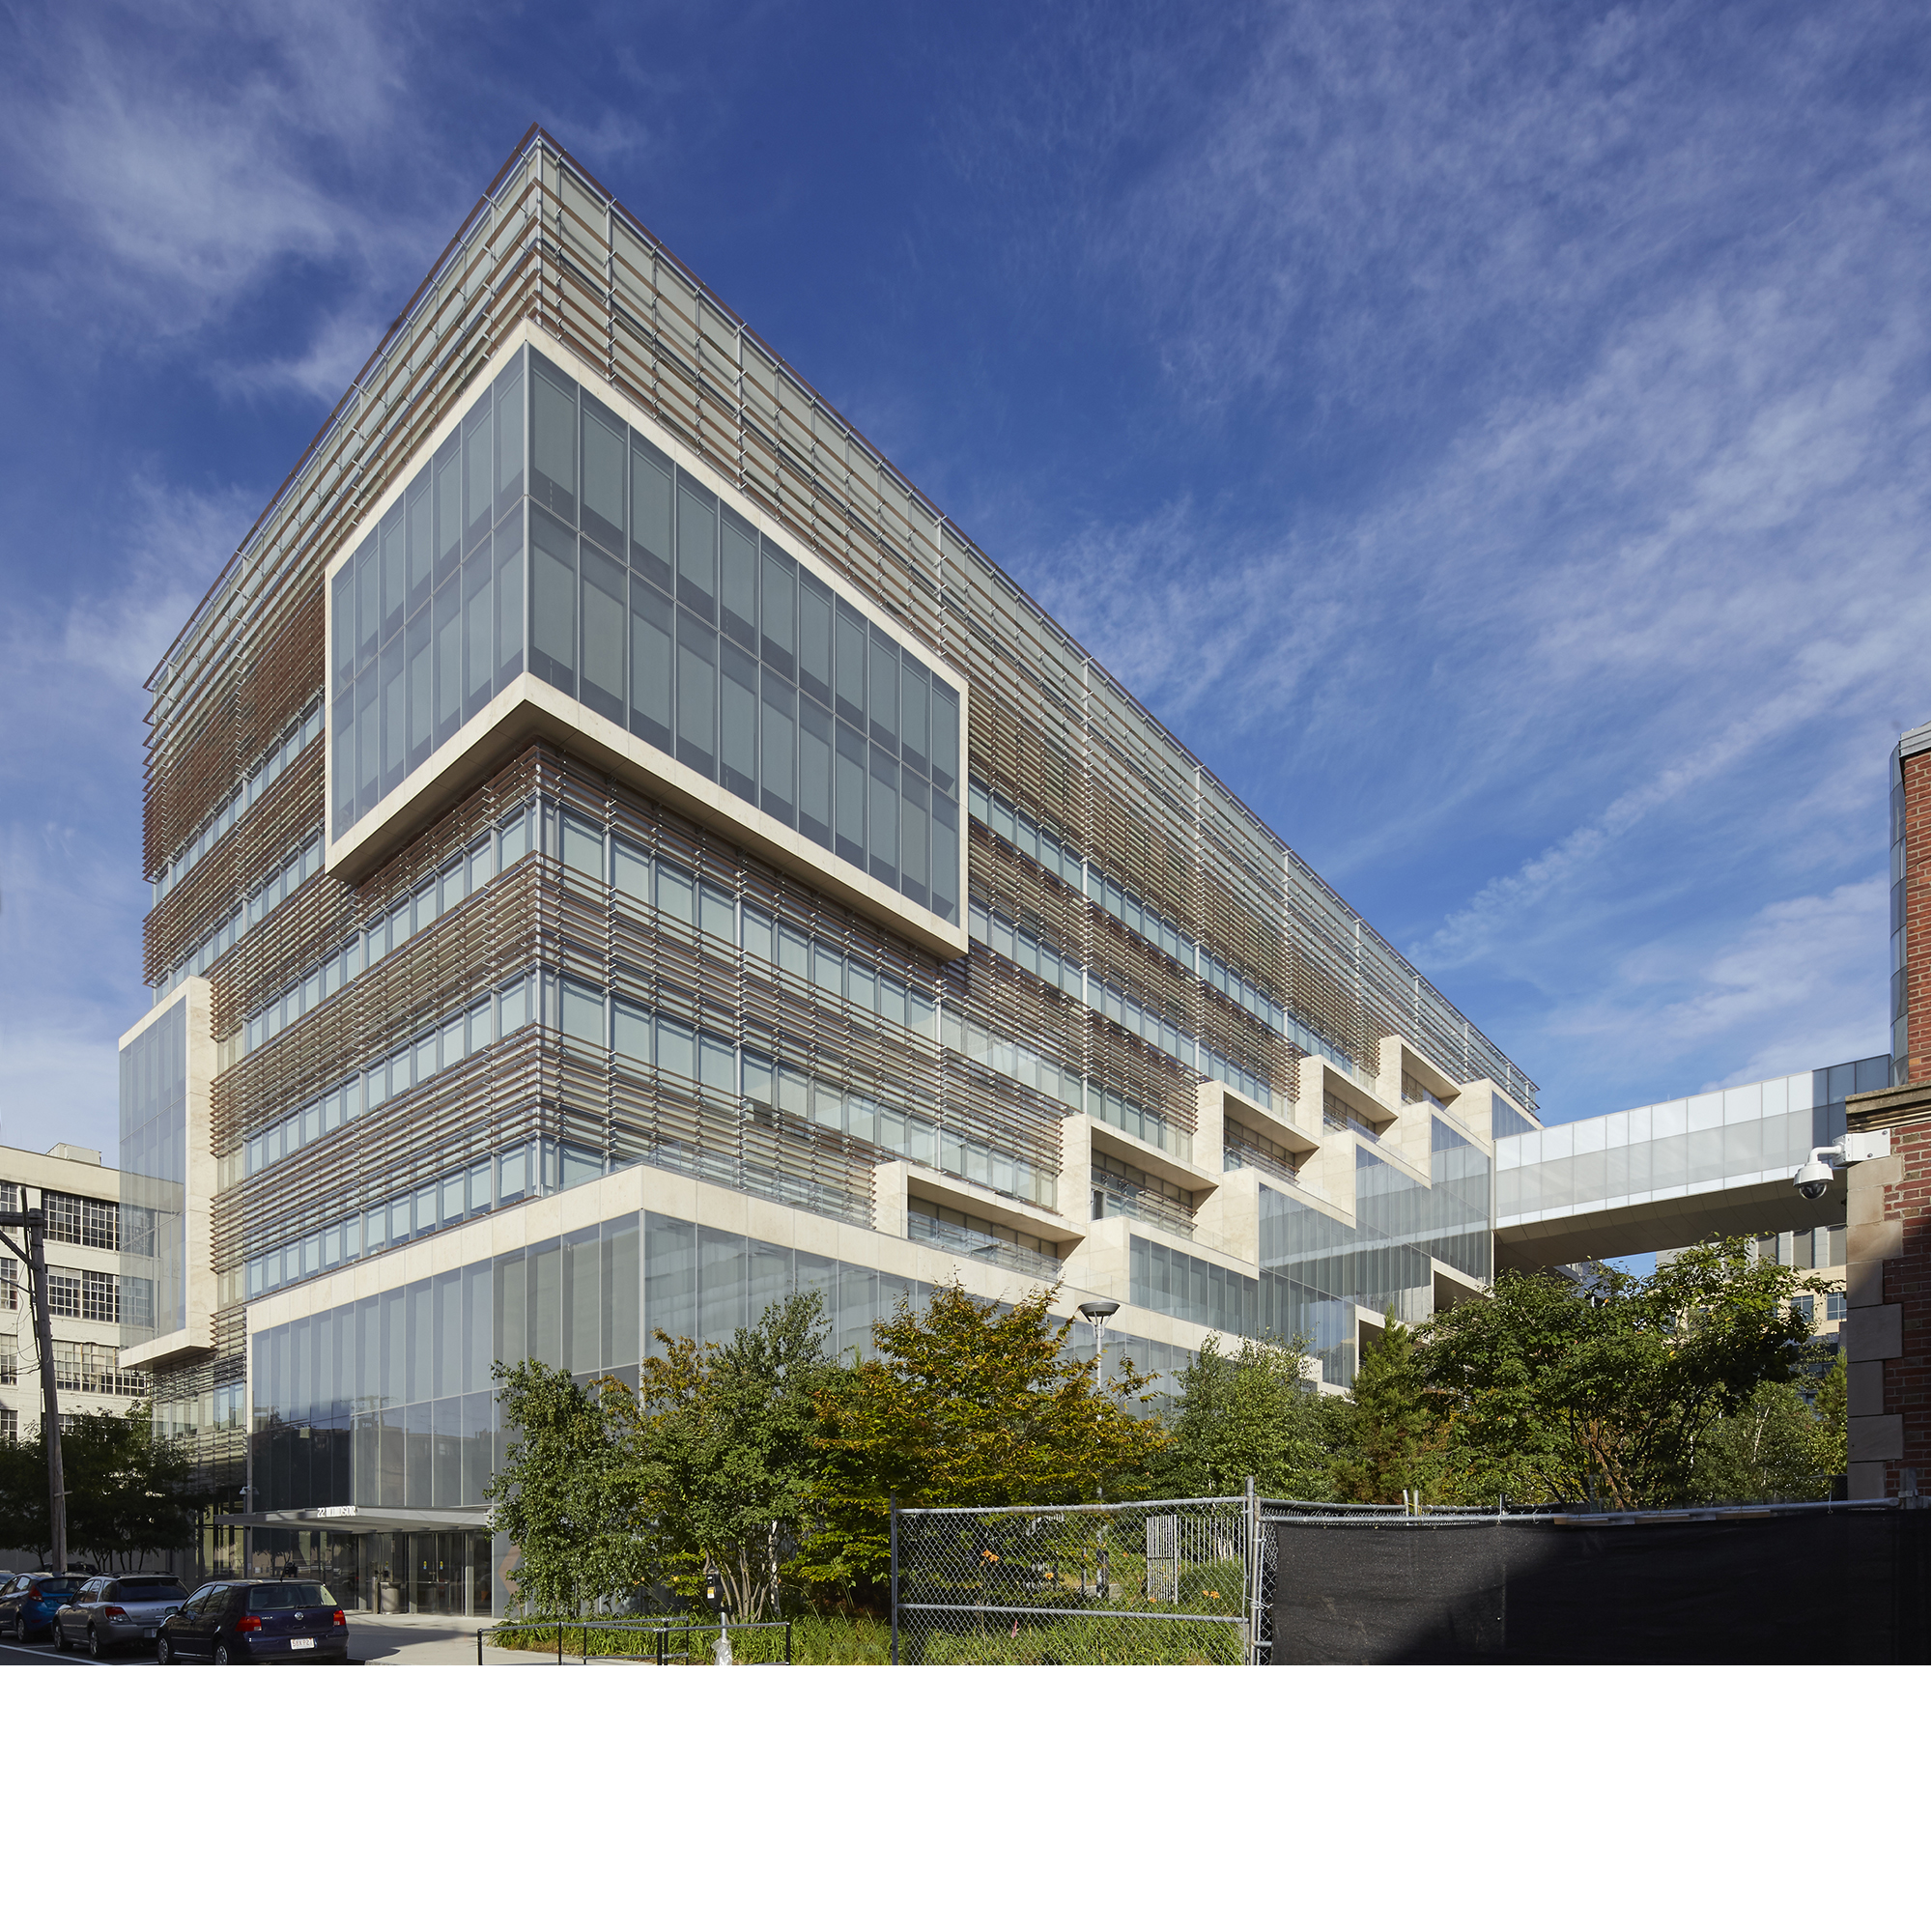 BOSTON RESEARCH LAB – Building 1 & 2